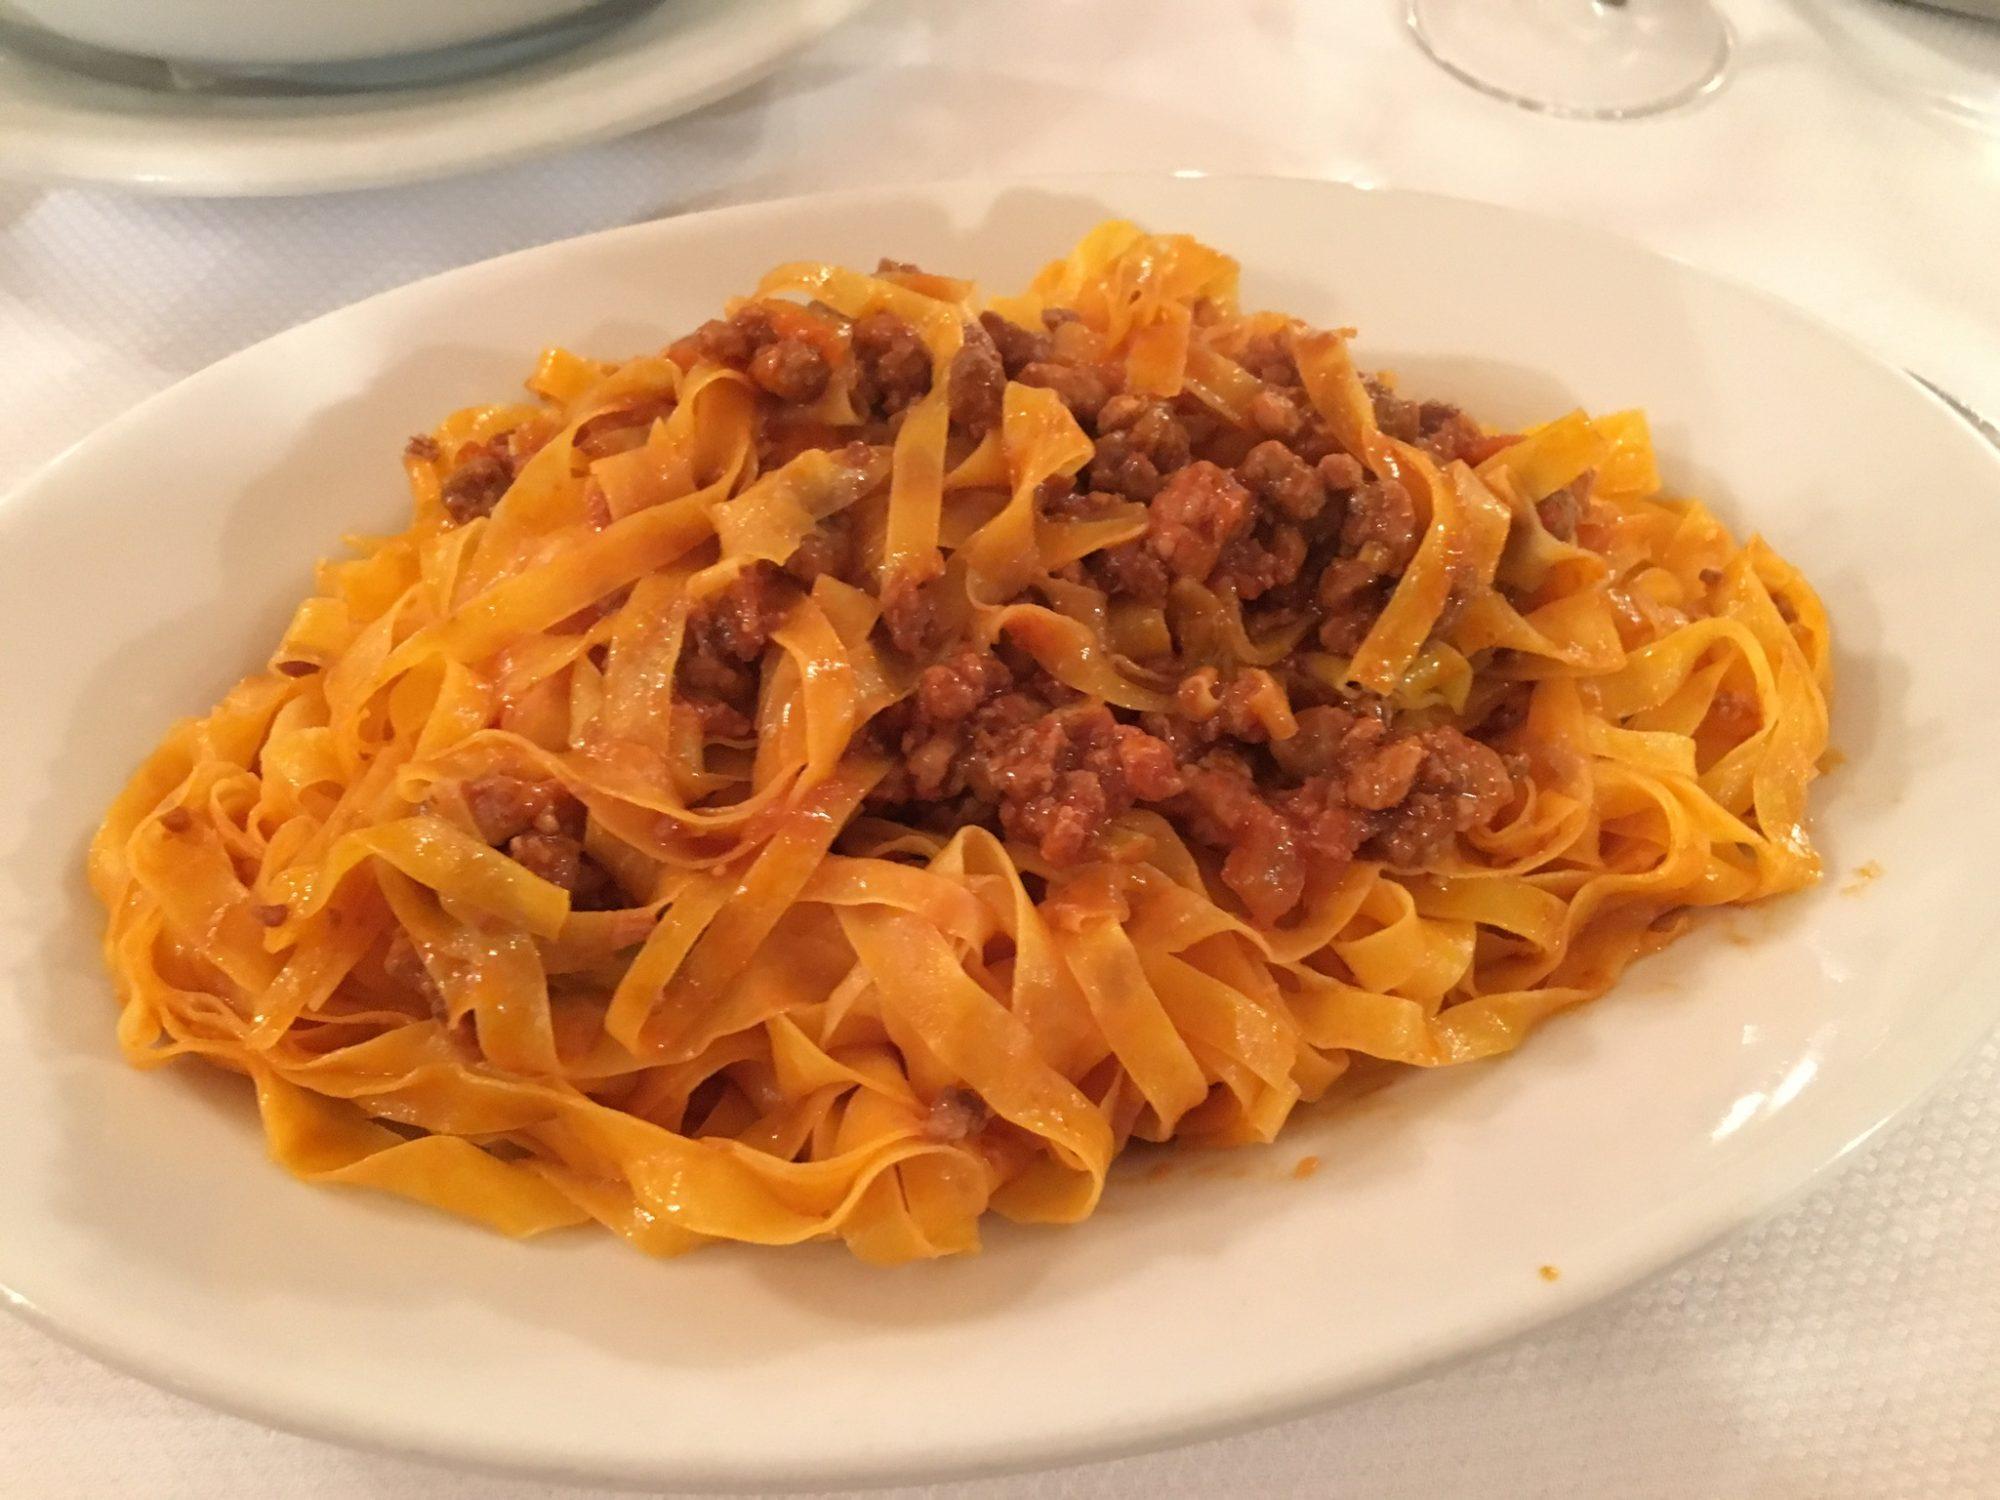 david-nayfeld-che-fico-san-francisco-emilia-romagna-italy-restaurant-guide-chef-dispatch-anna-maria-blogpost.jpg